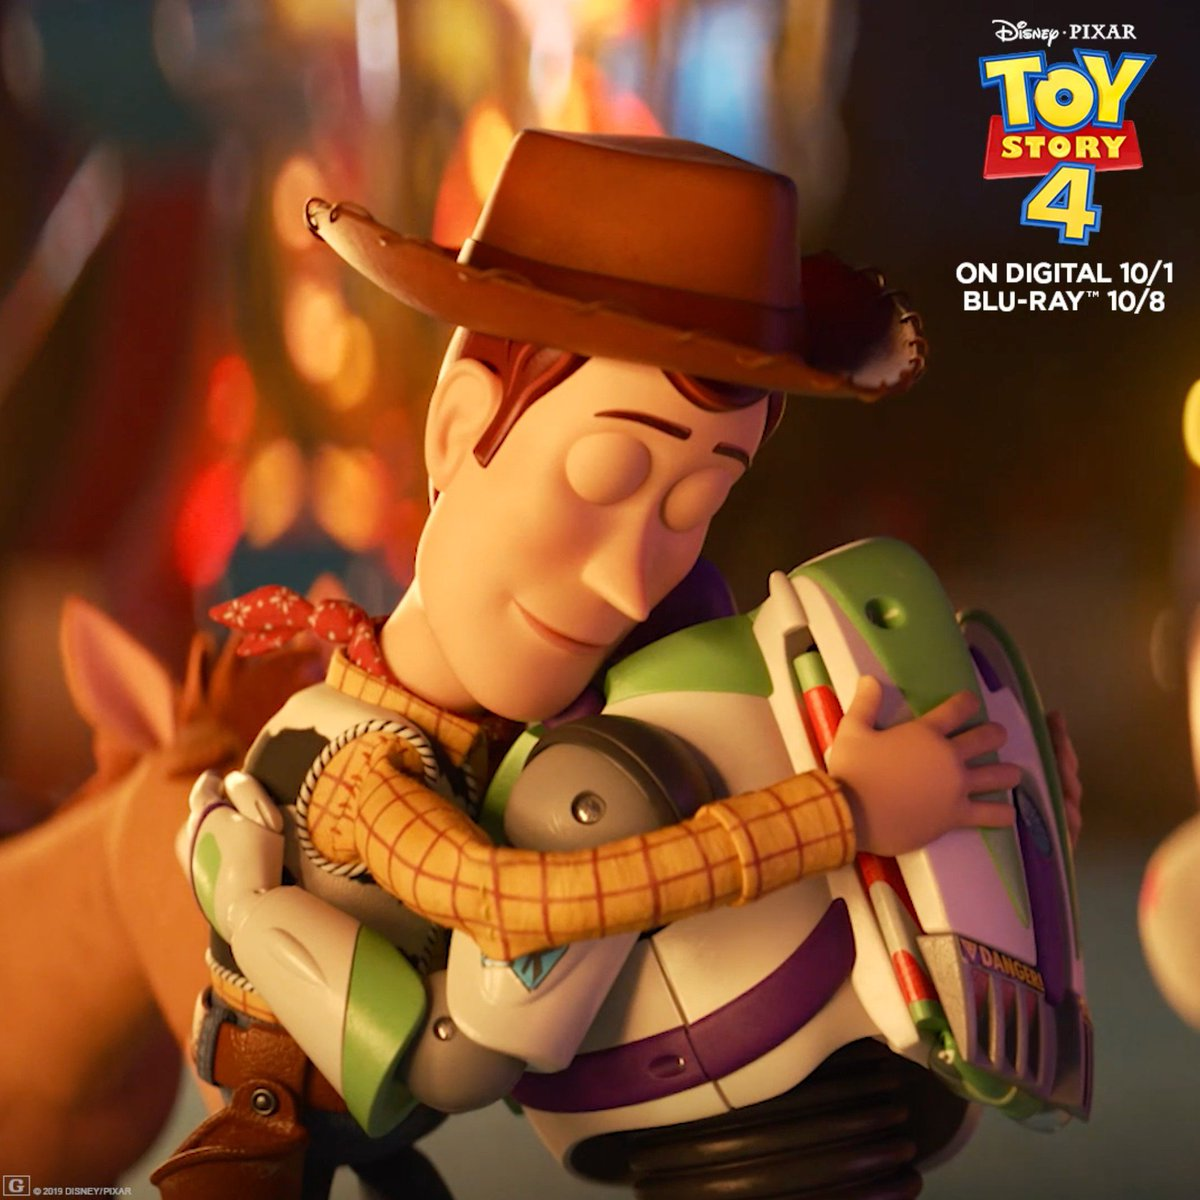 Old friends, new adventures. Join Woody, Buzz, and the gang when you bring home #ToyStory4 on Digital and #MoviesAnywhere 10/1 and Blu-ray 10/8. Pre-order now: http://di.sn/6004E2lWM